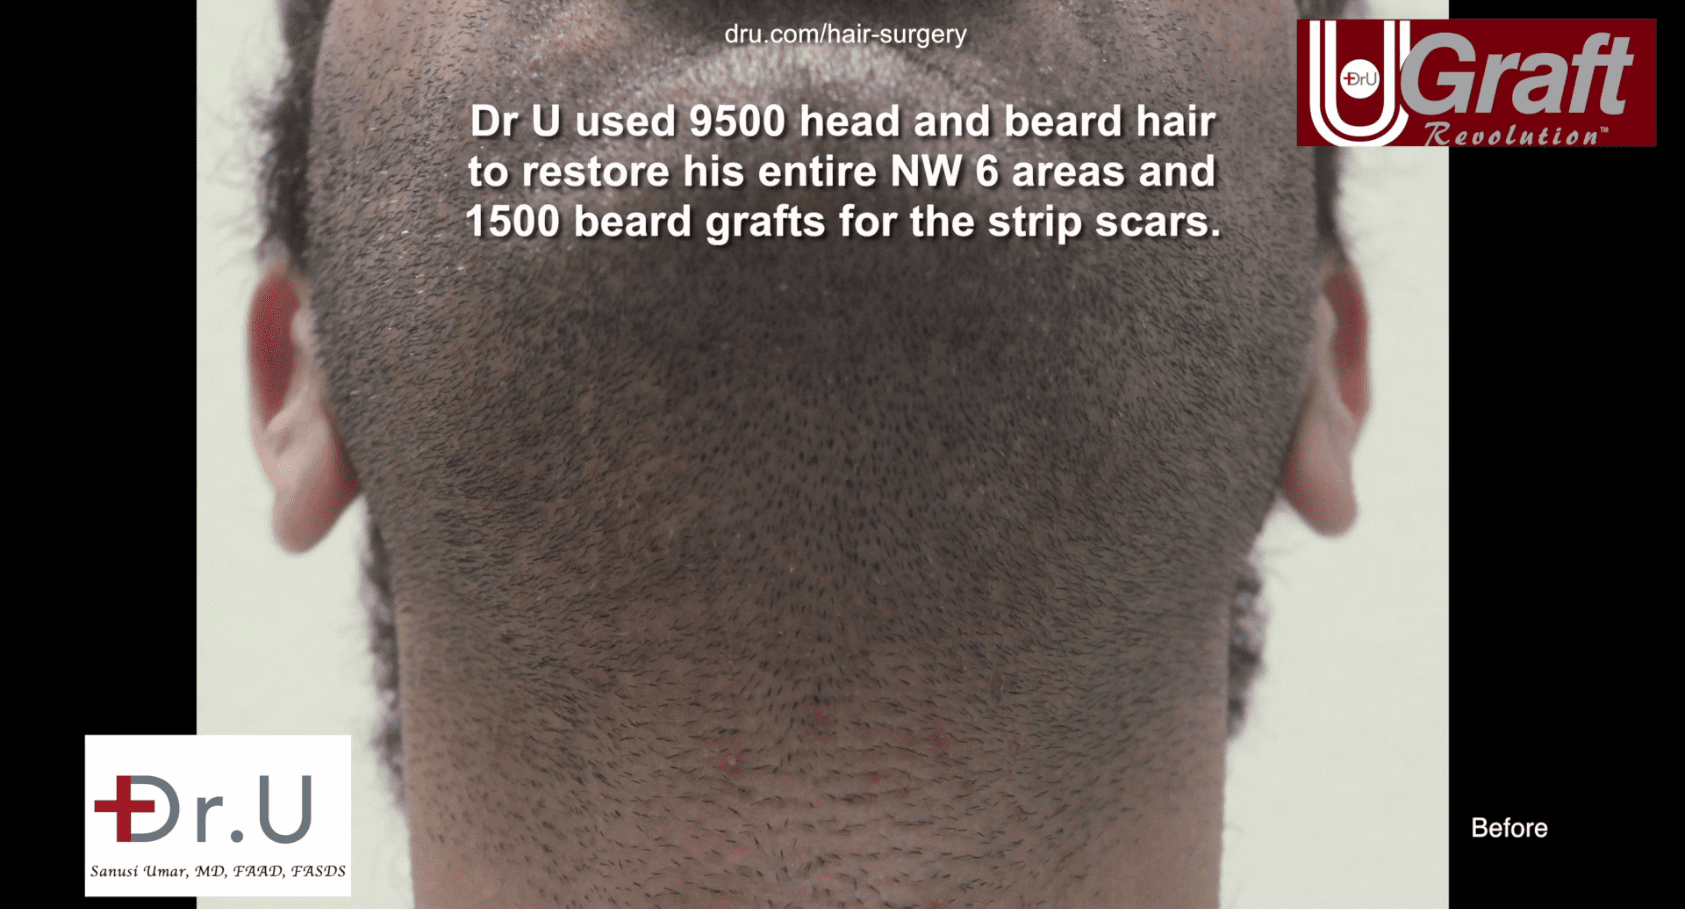 Dr. Umar use his body hair transplant system to pull 1500 beard grafts to cover this patients strip scars.